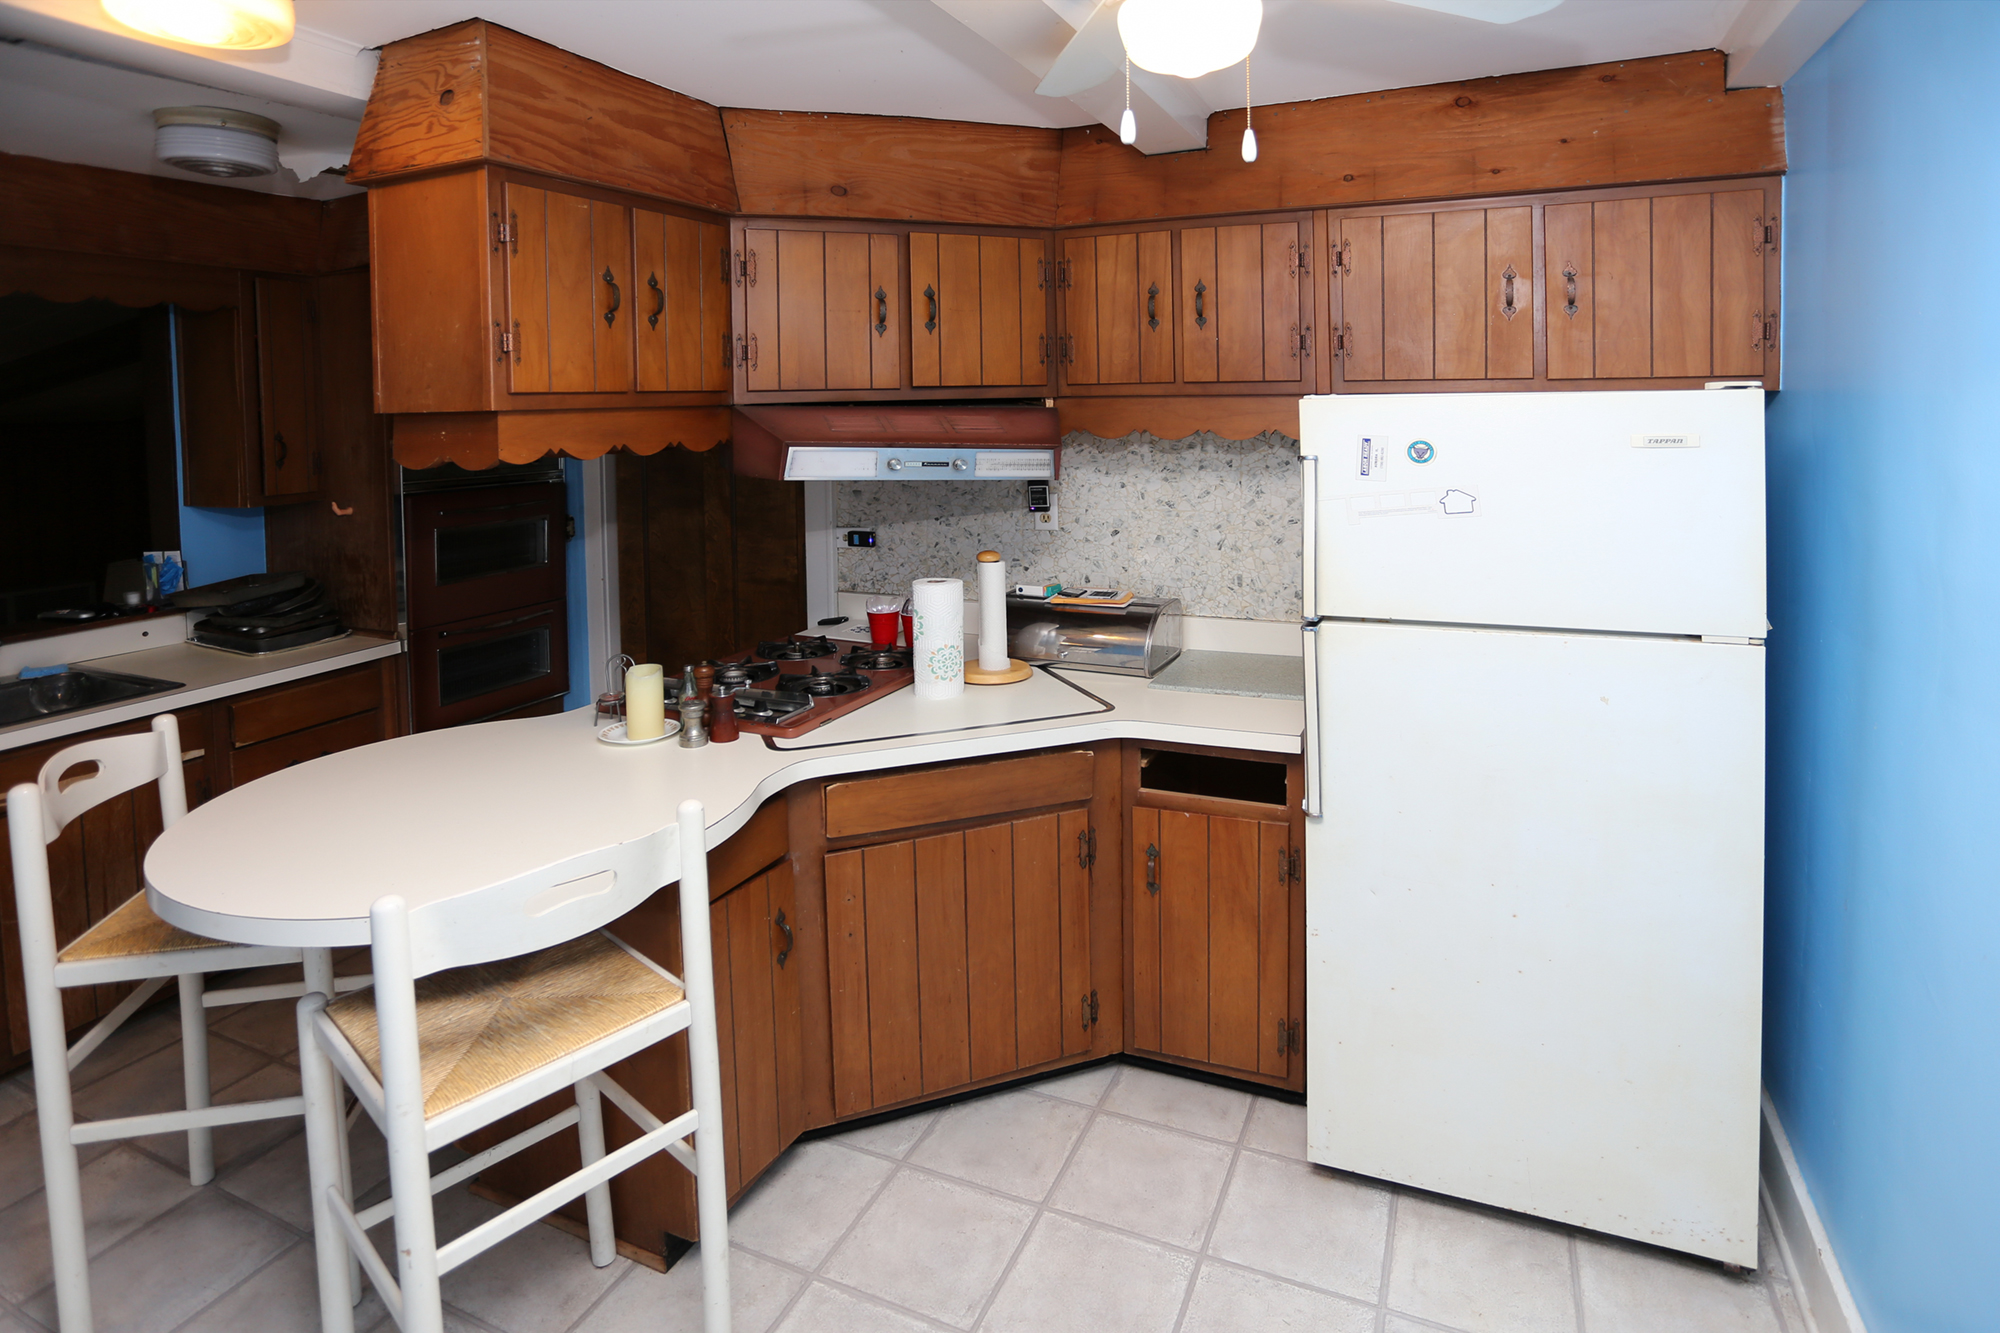 Ugly Kitchen Contest Winner Before/After Photos! | Seigles Cabinet on utopian kitchen, cleanest kitchen, old ugly kitchen, badly designed kitchen, painting ugly kitchen, pink kitchen, oldest kitchen,